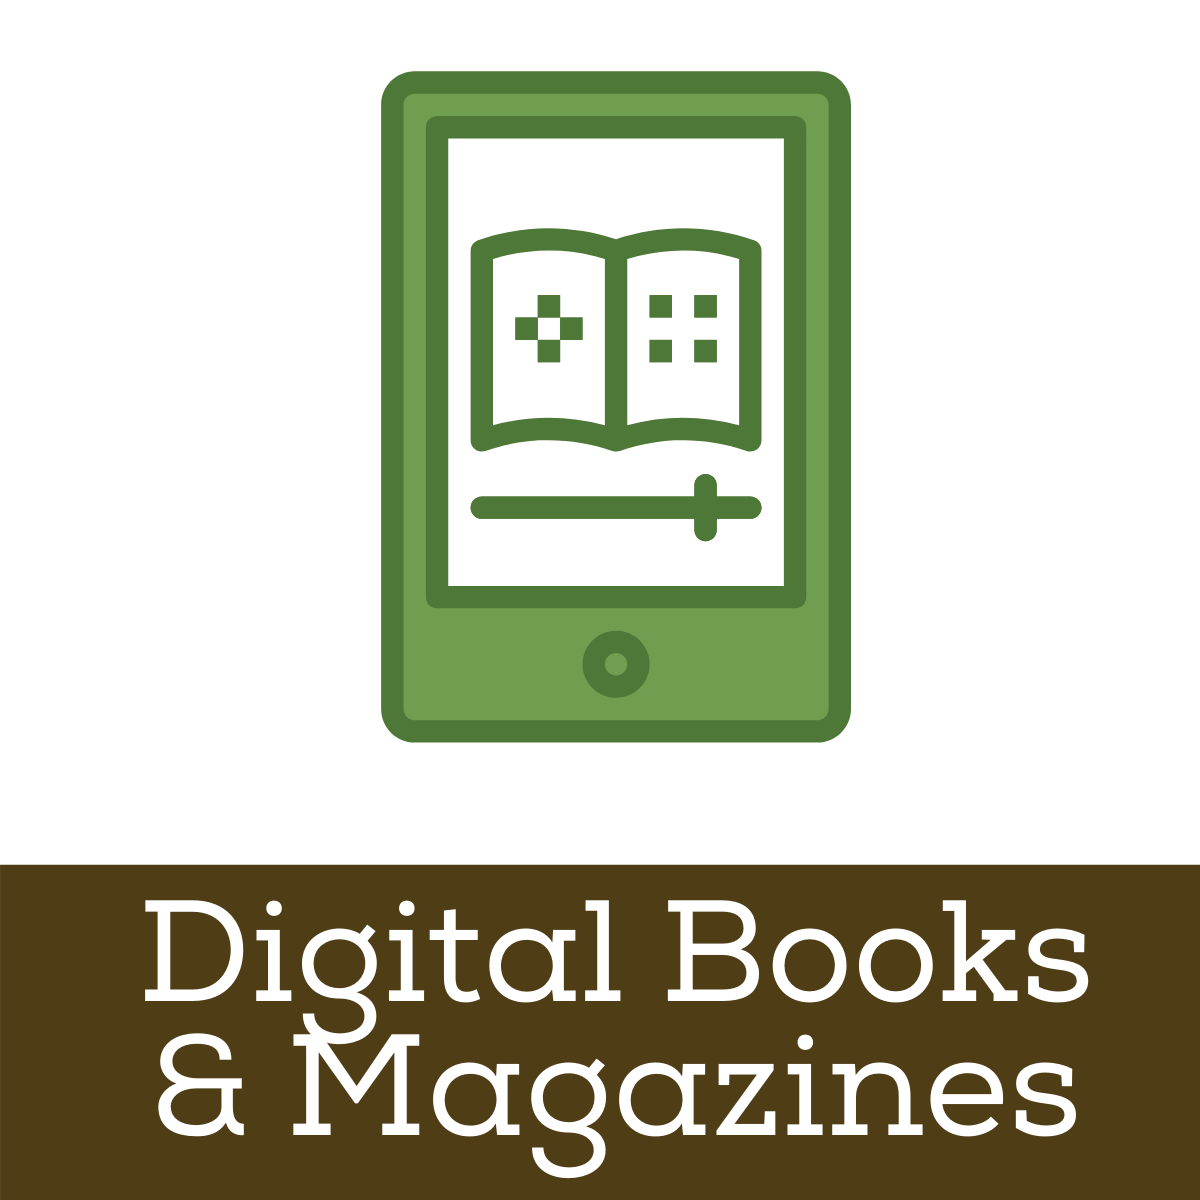 Digital Books & Magazines